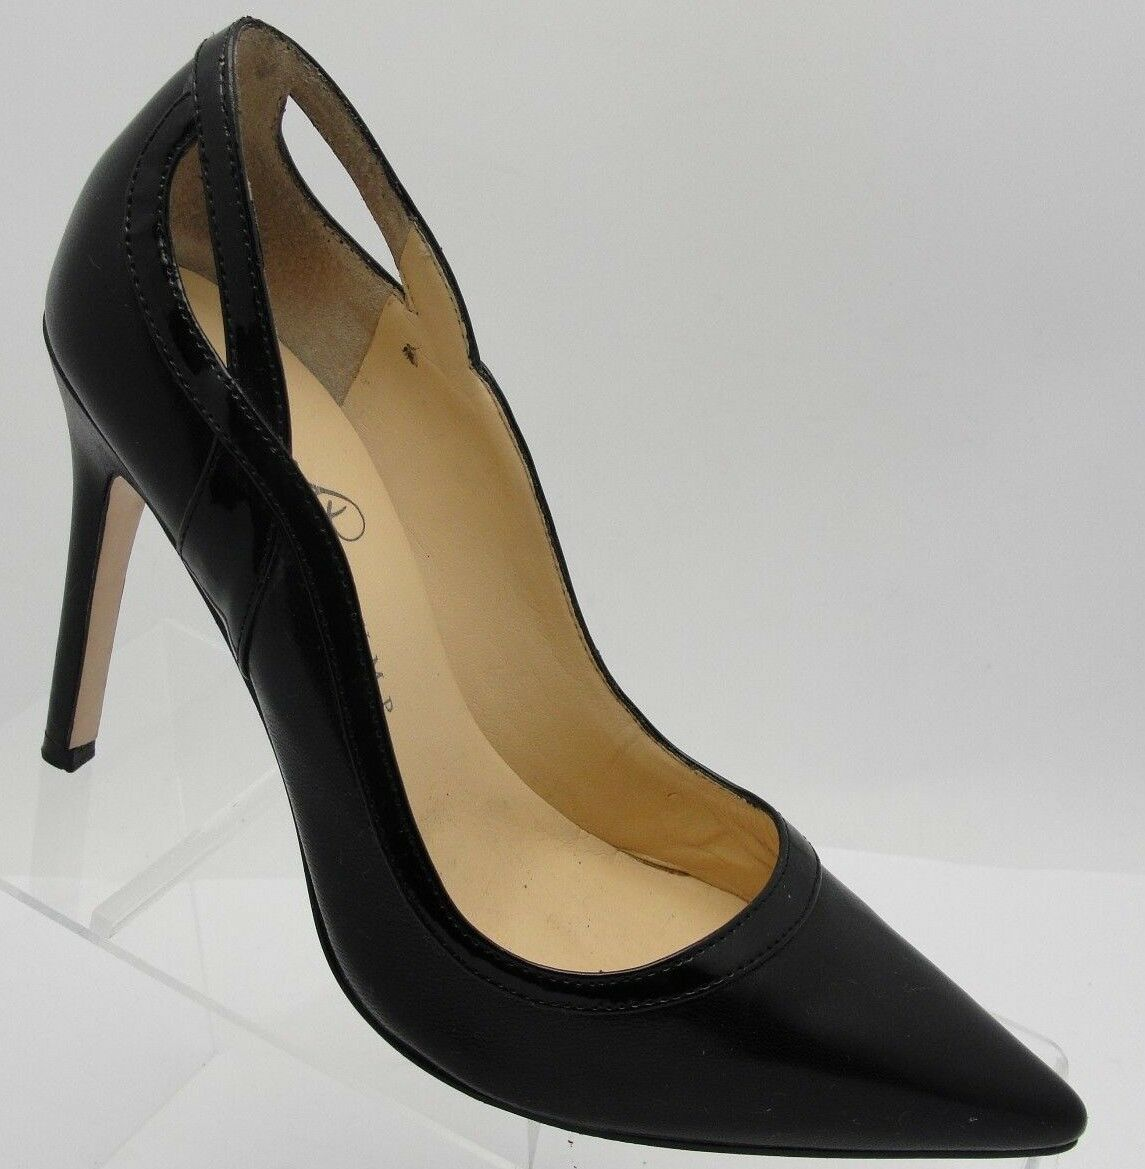 Ivanka Trump Women's Black Leather Pointy Toe Pumps 7 M Heels EUC! S39